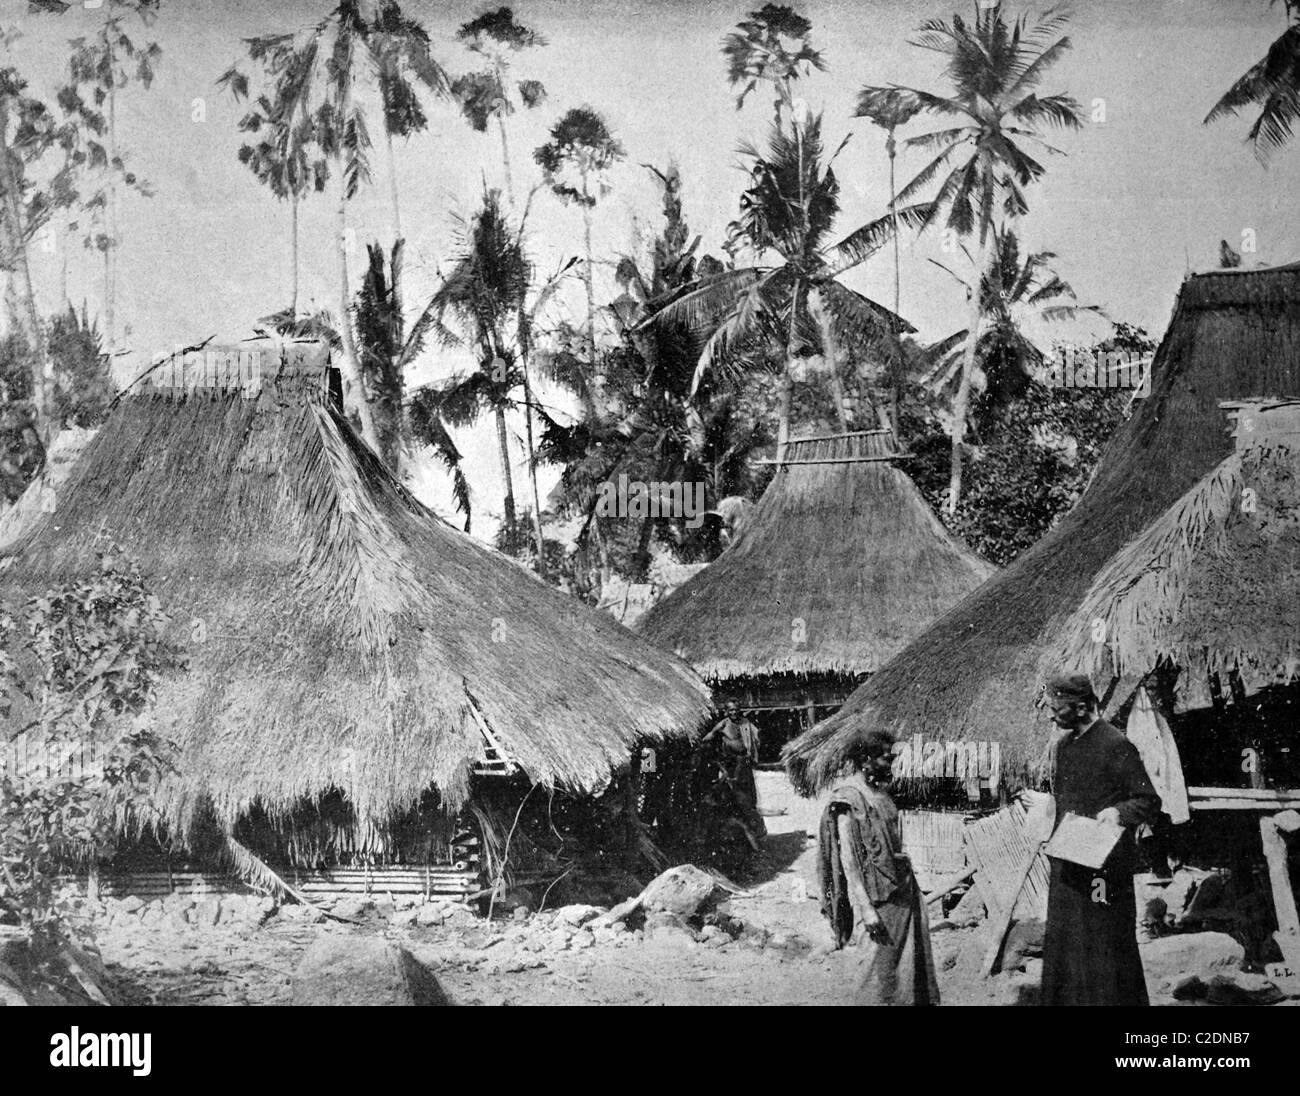 One of the first autotypes of the village of Lewolere, Ile de Flores, Oceania, historical photograph, 1884 - Stock Image